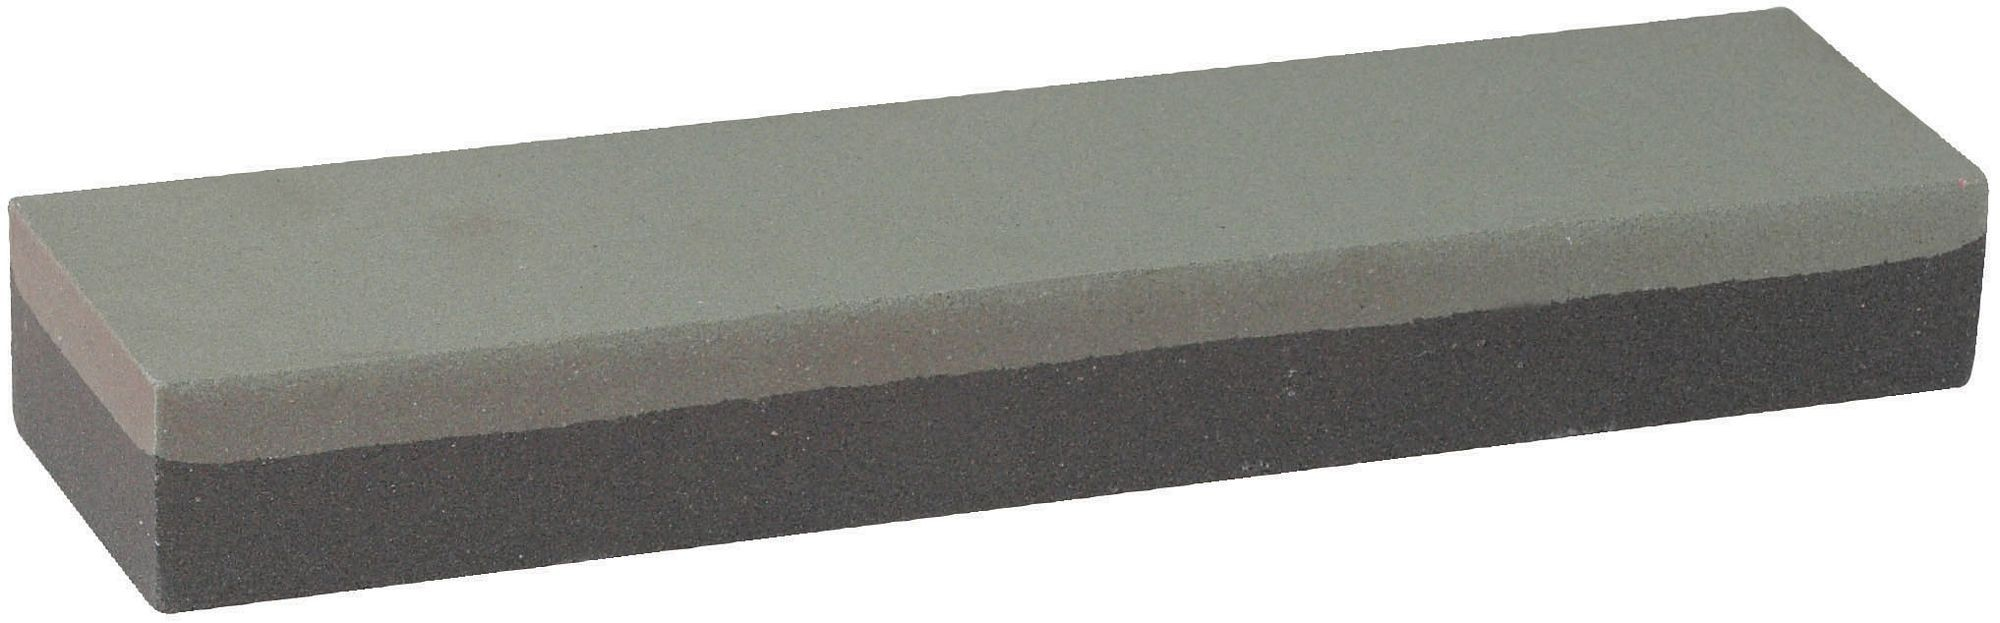 "Winco SS-821 Combination Sharpening Stone, 8"" x 2"" x 1"""